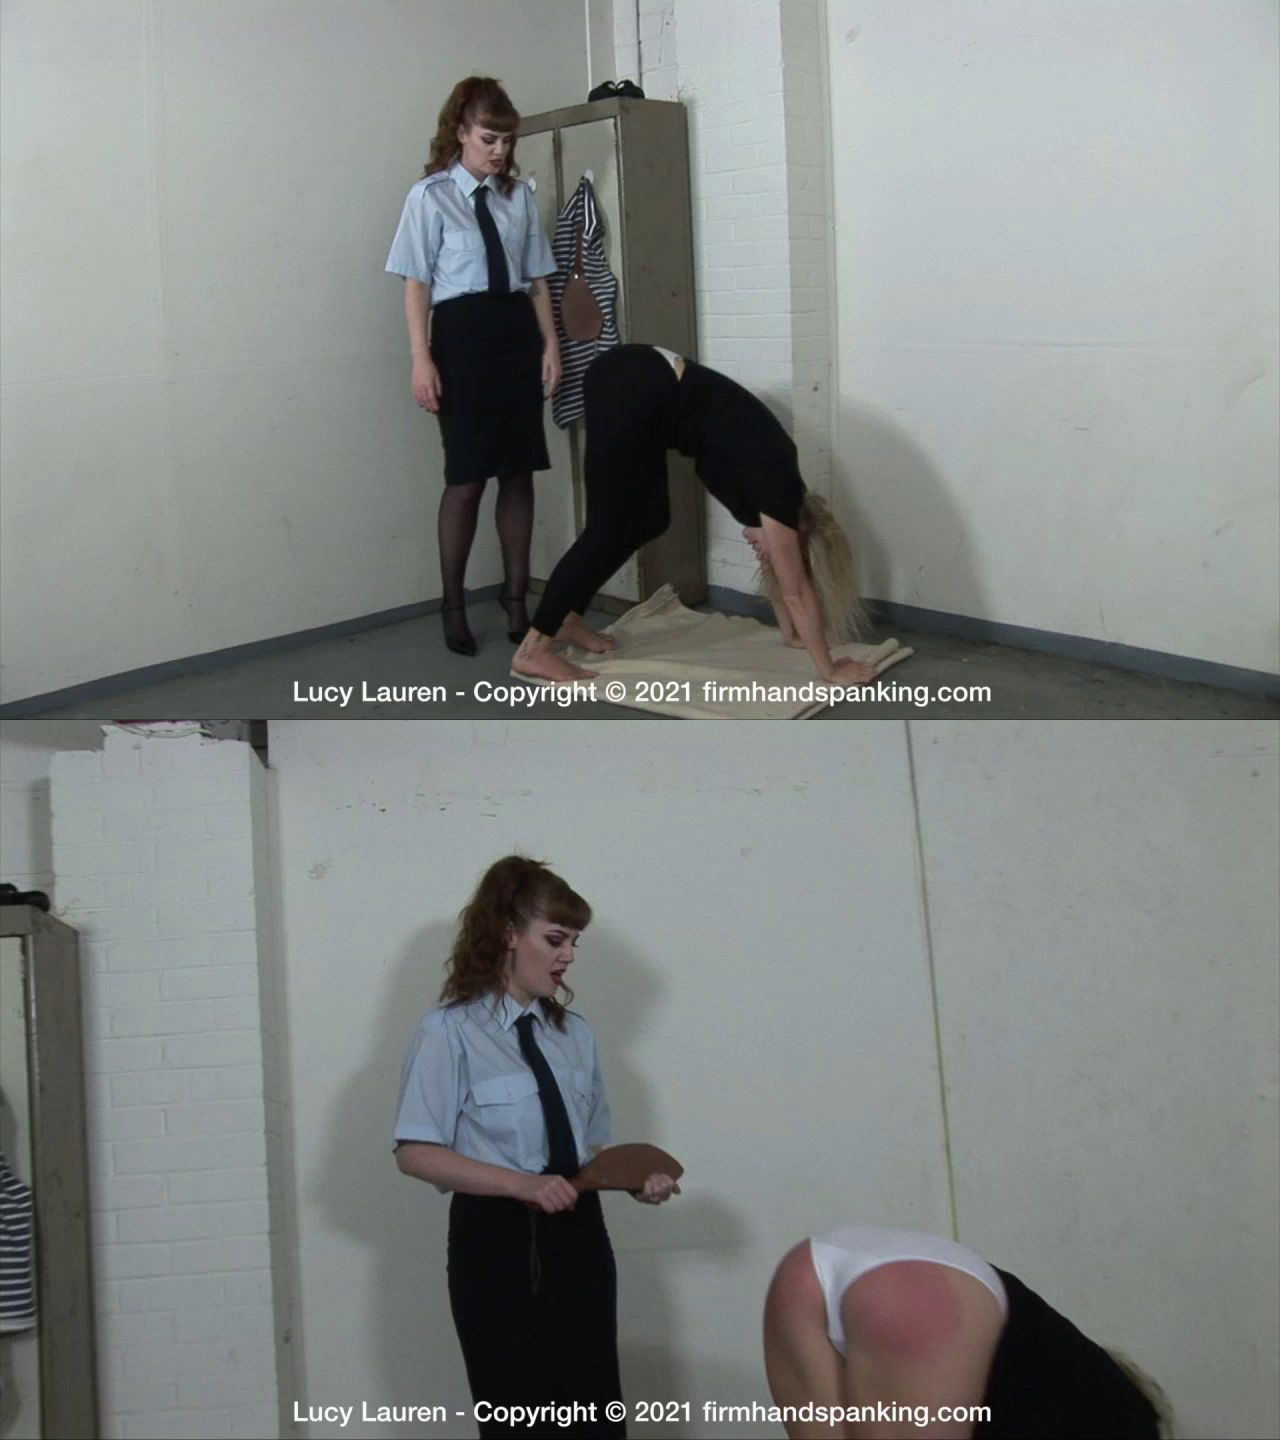 Firm Hand Spanking – MP4/HD – Lucy Lauren – Correctional Institute (Release date: Sep 24, 2021)